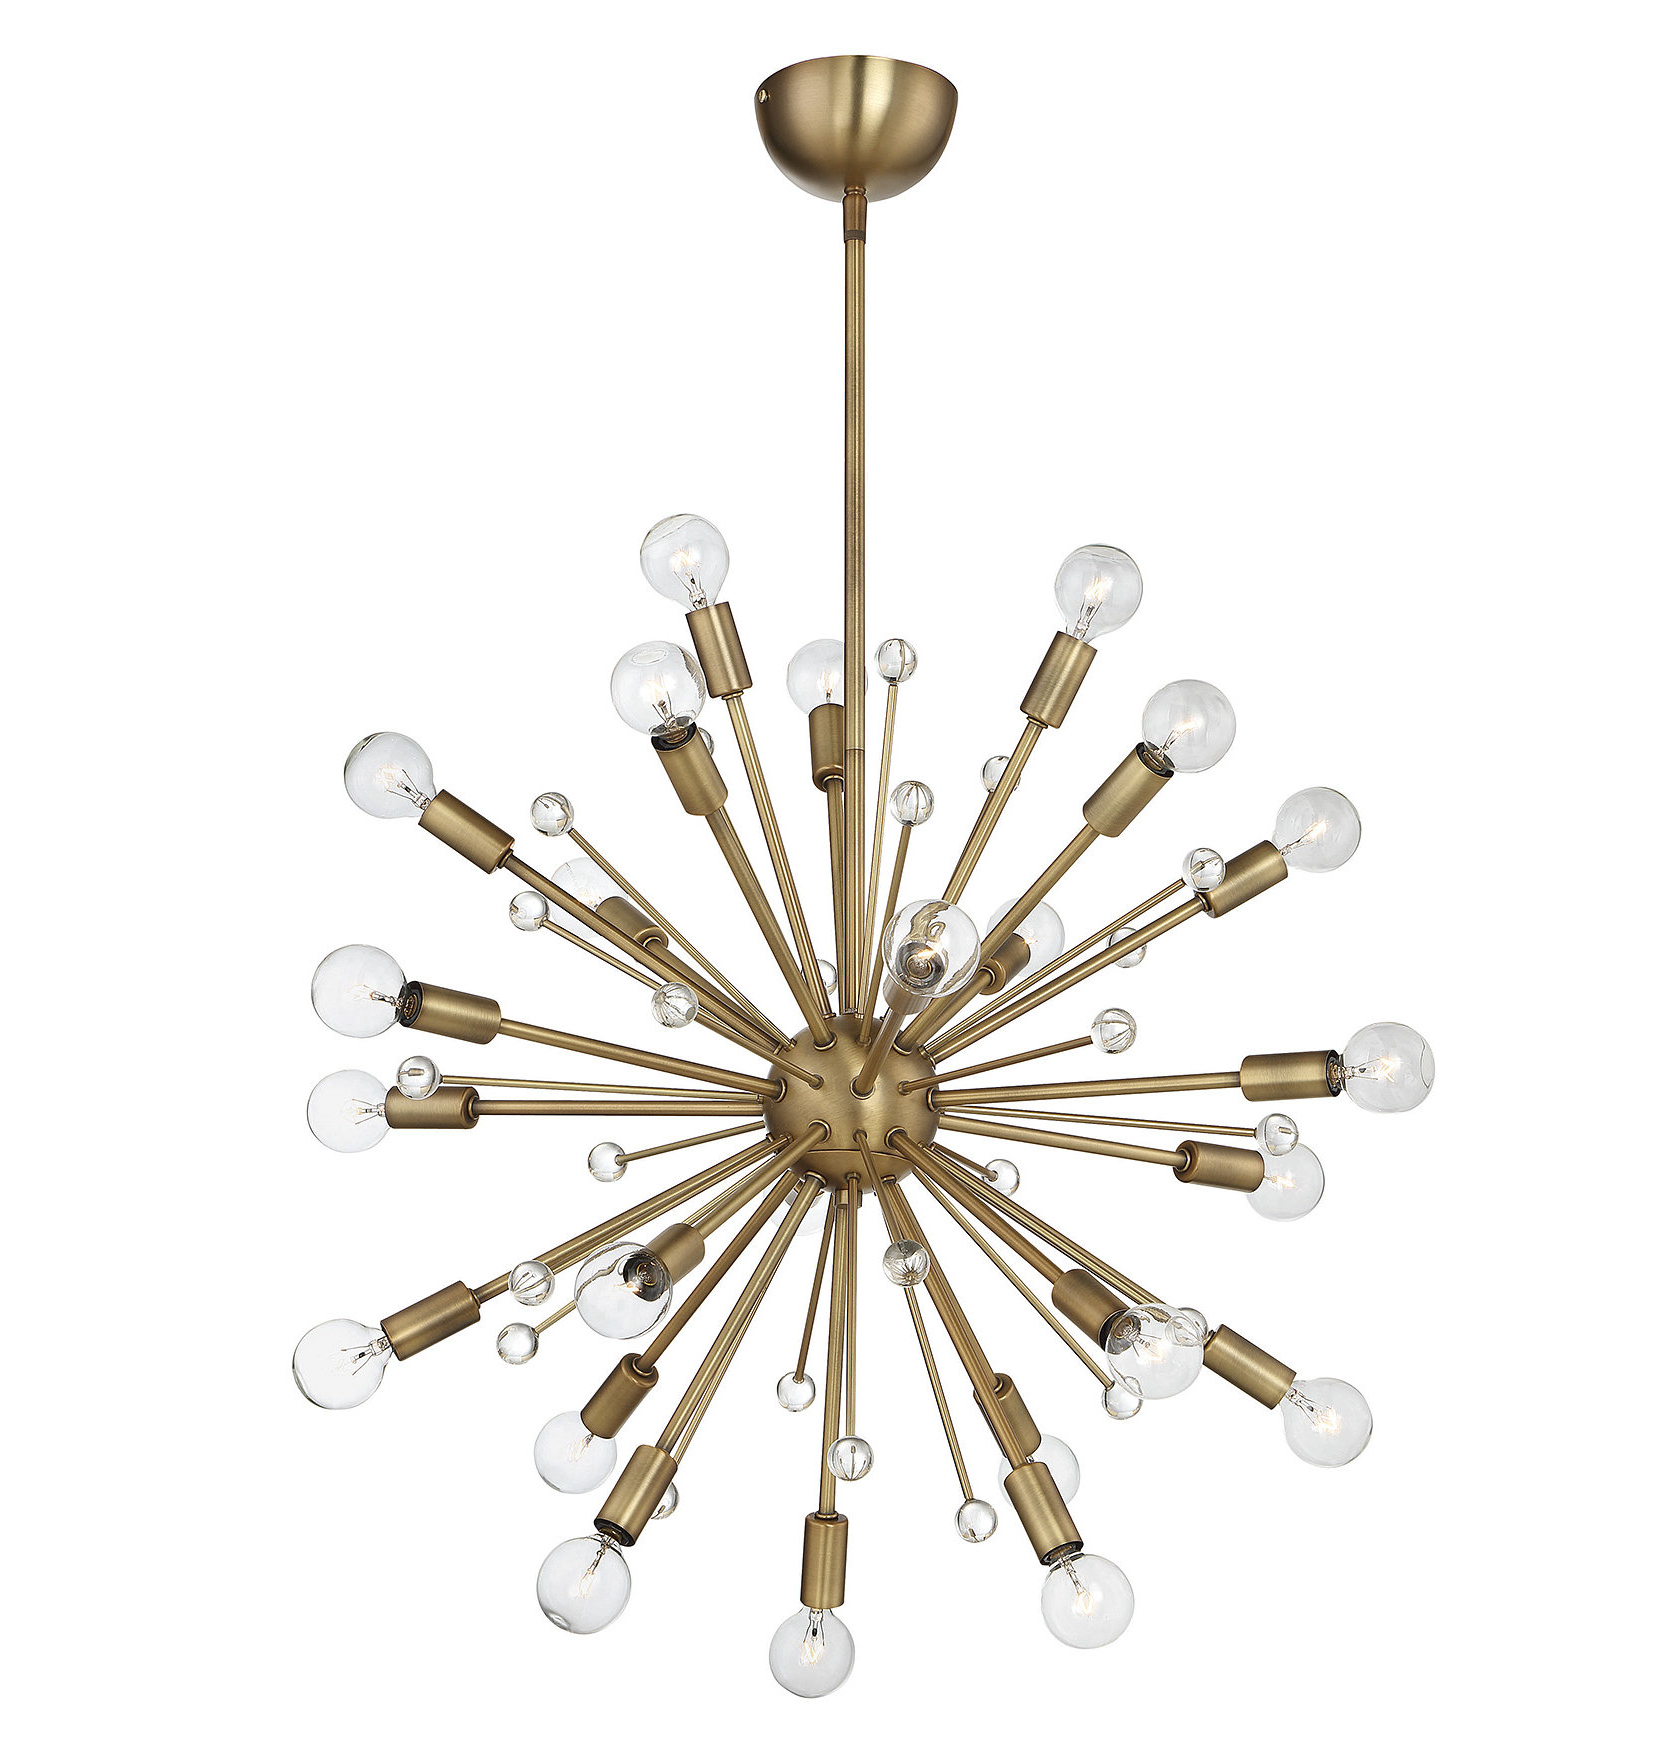 Corona 12 Light Sputnik Chandeliers With Trendy Cumbria 24 Light Sputnik Chandelier (View 21 of 25)